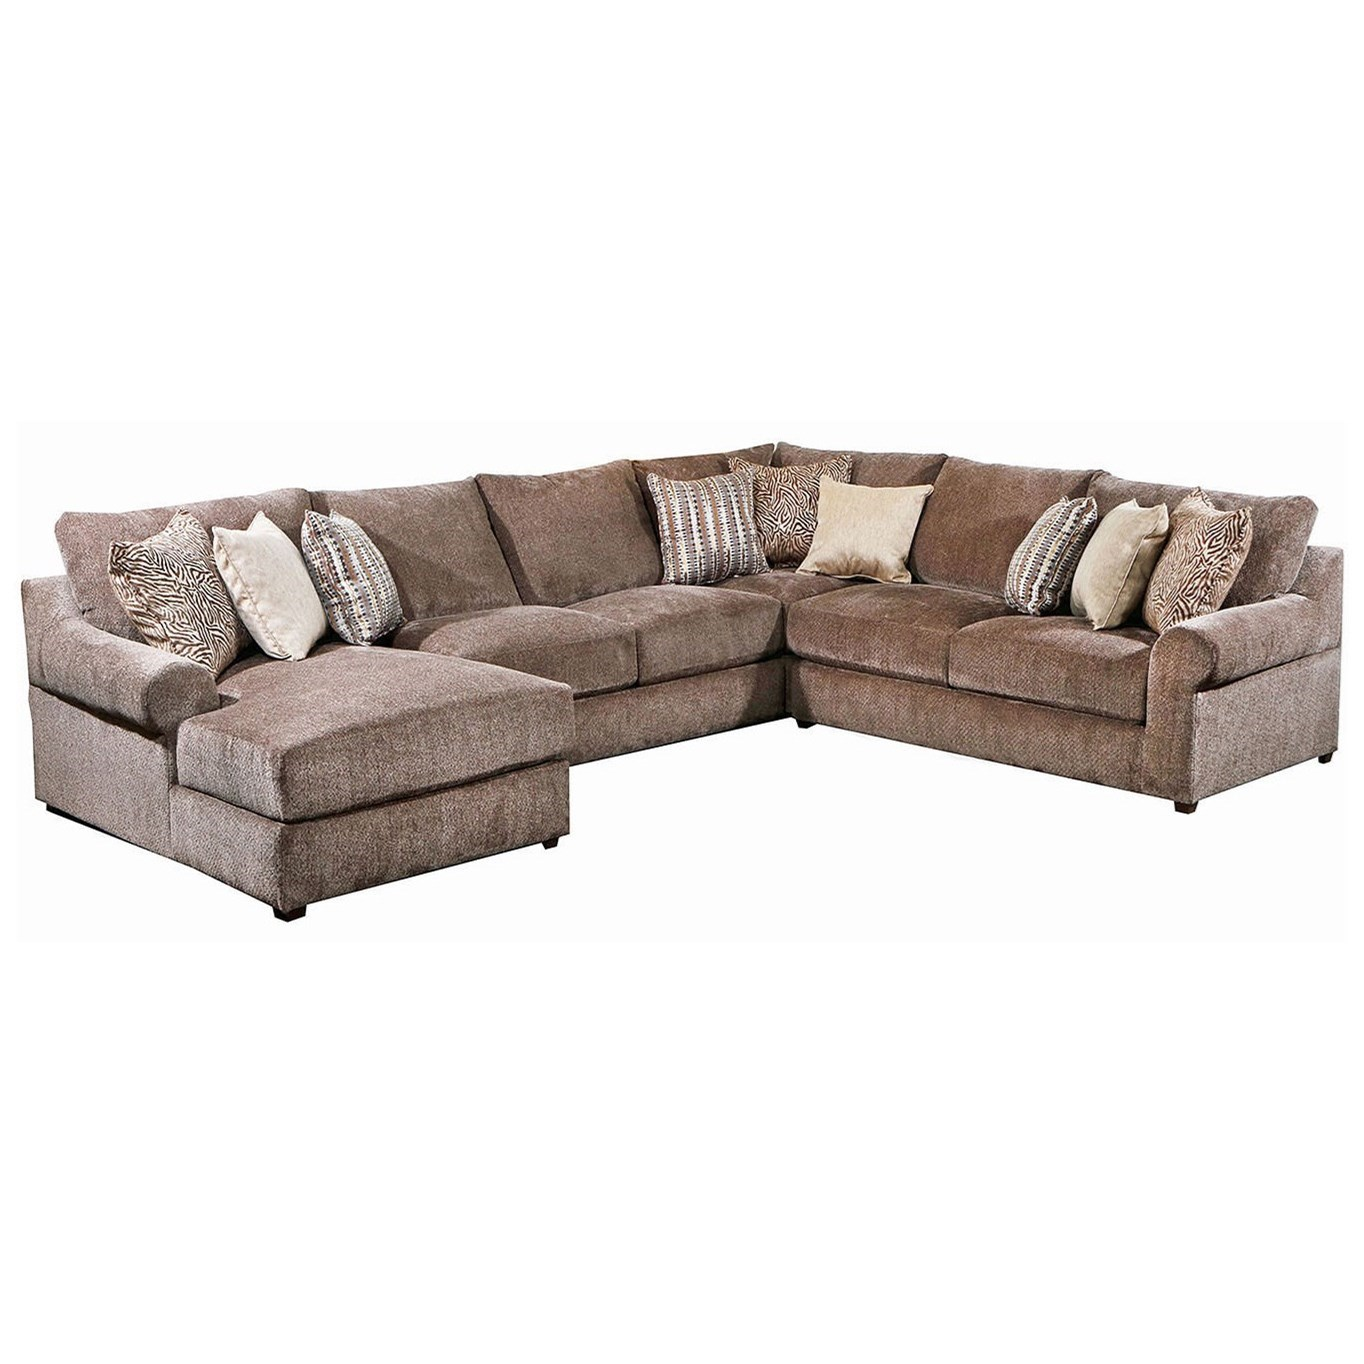 9906 4-Piece Sectional by United Furniture Industries at Dream Home Interiors